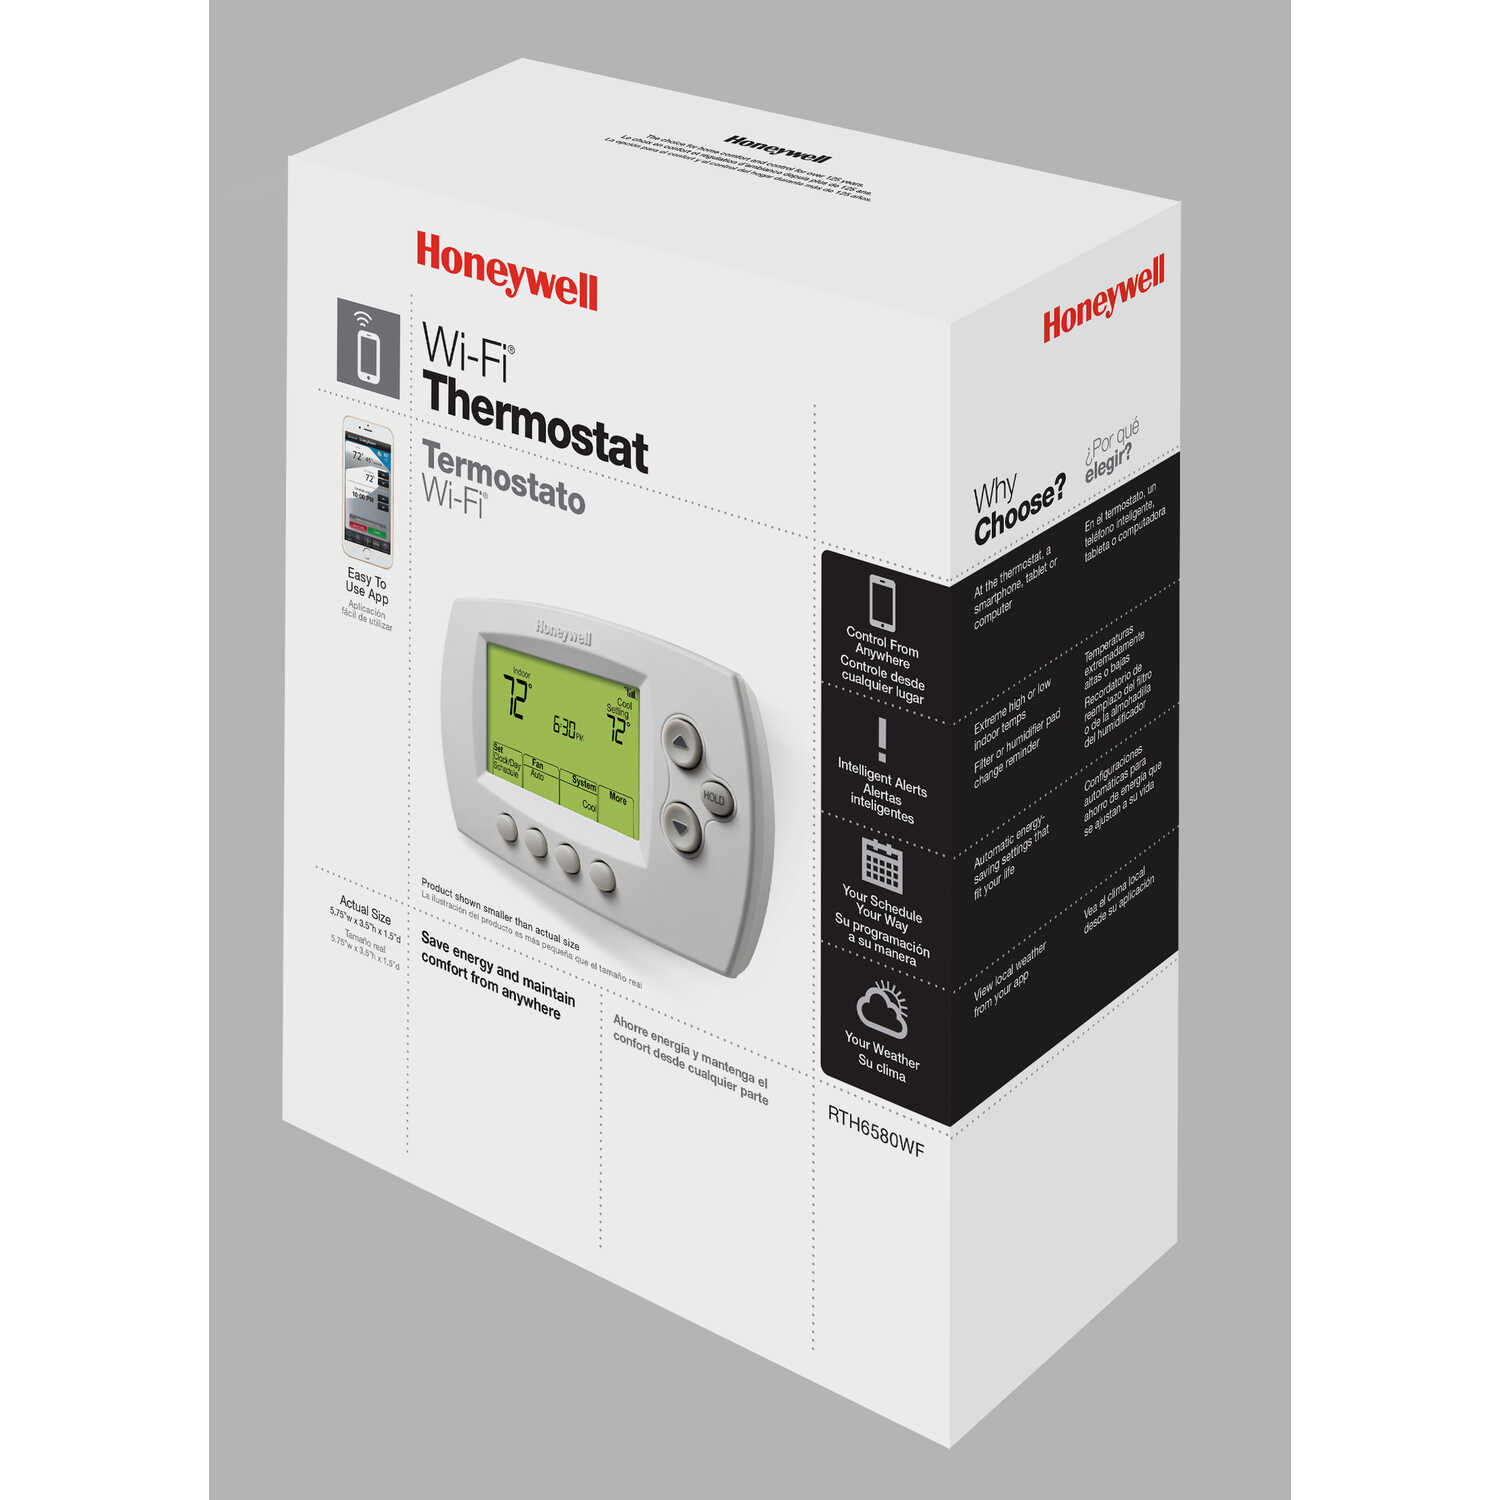 Honeywell Humidifier Wiring Free Download Wiring Diagrams Pictures